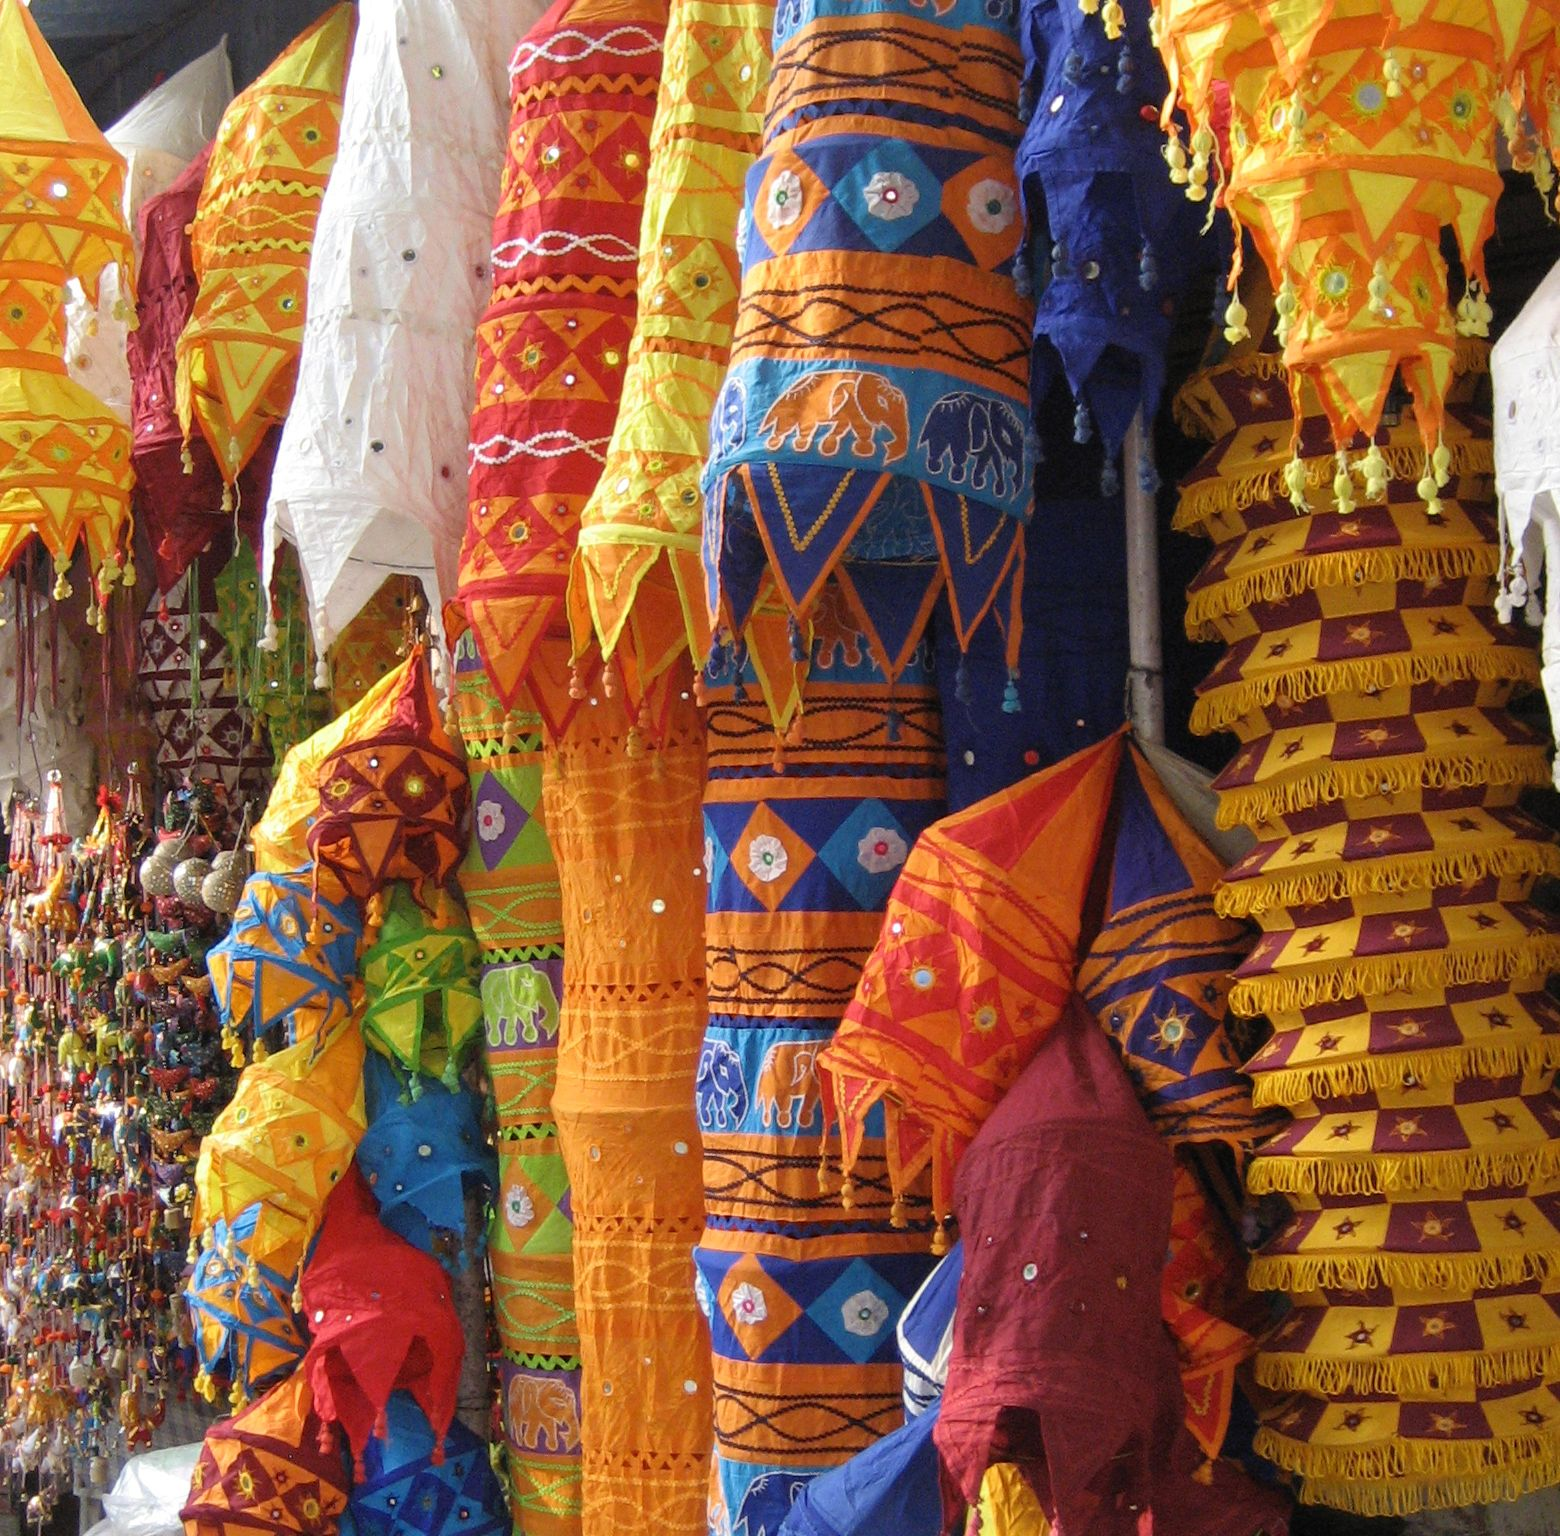 Best Places To Visit In Goa Lonely Planet: Janpath Market, Aka The Tibetan Market, This Touristy